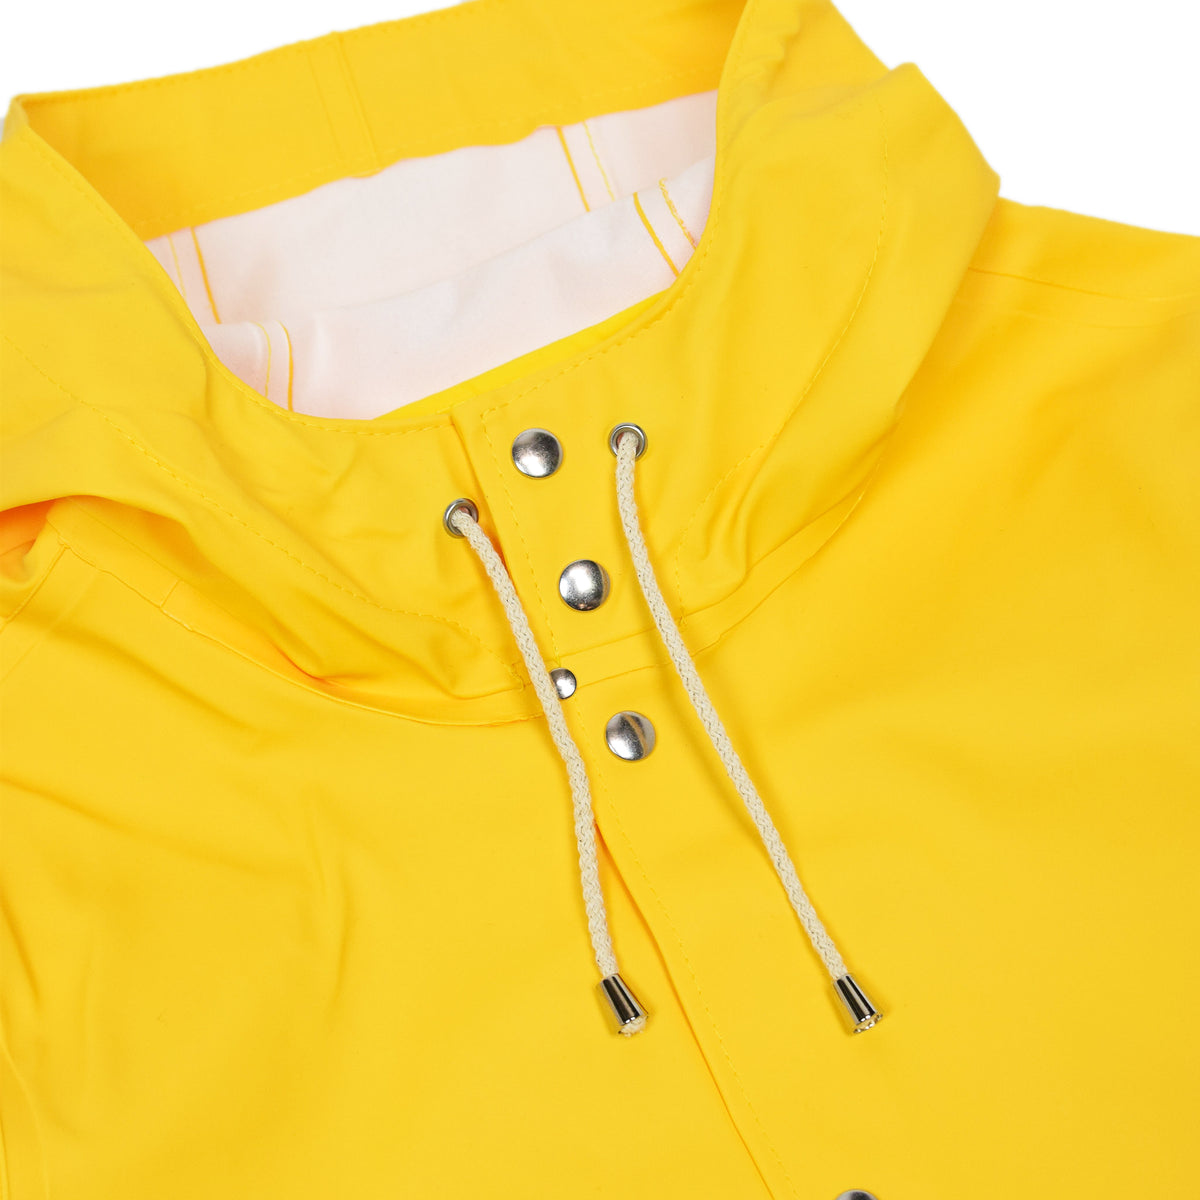 Stutterheim Stockholm Rubberised Raincoat Jacket Yellow Snap Front